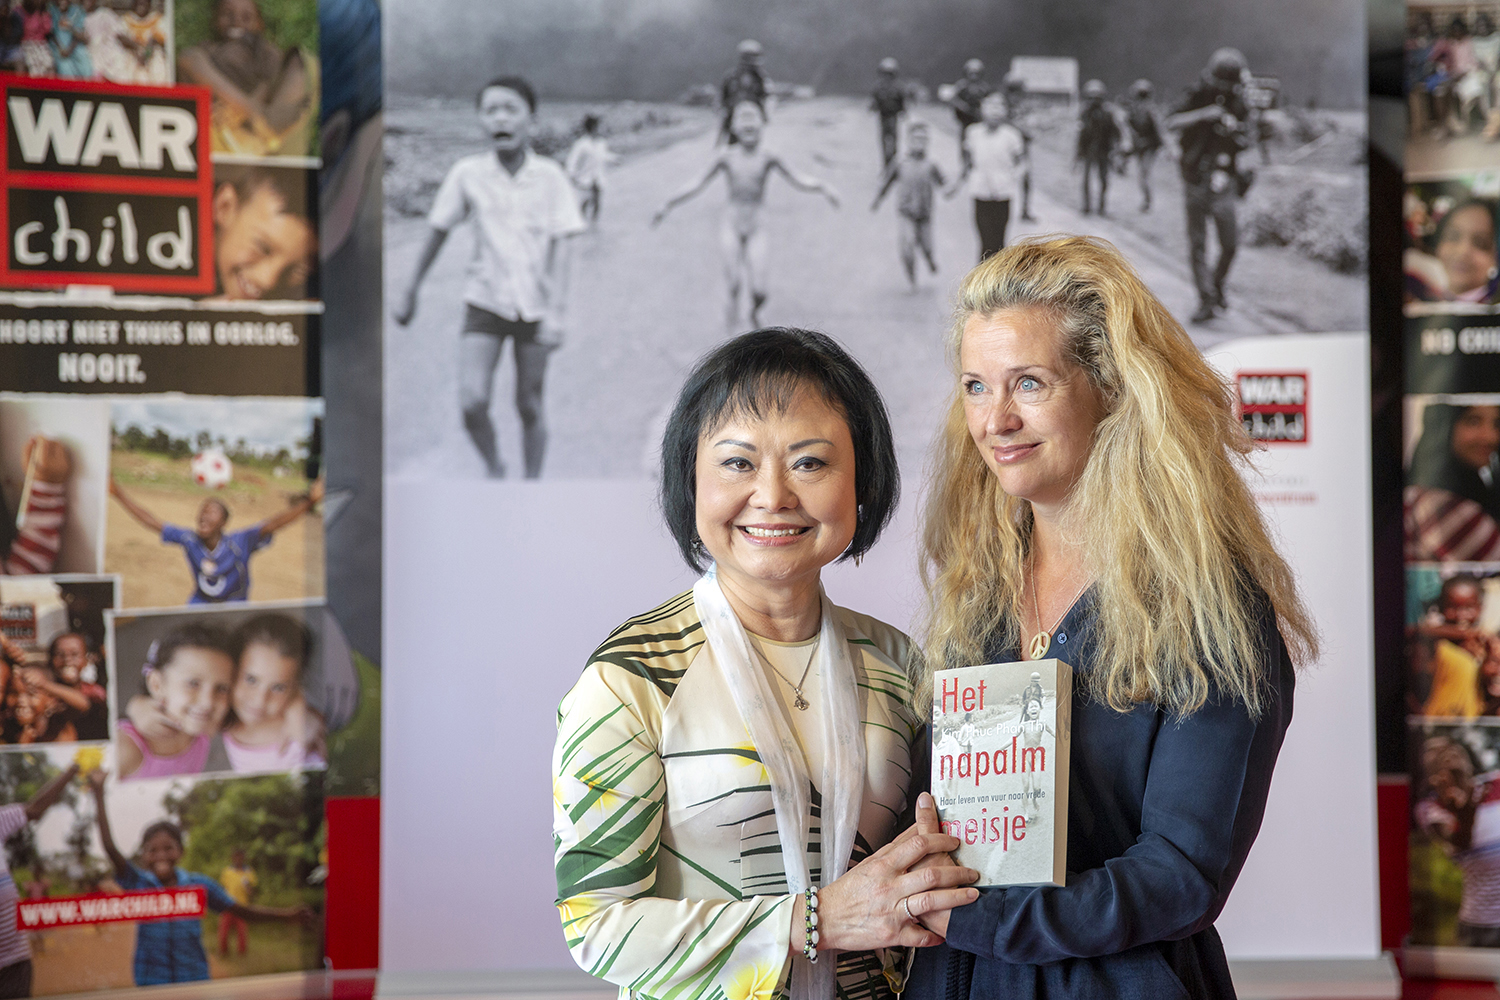 20180517_WCH_Kim_Phuc_napalm_girl_book_presentation_Willemijn_Verloop_03.jpg